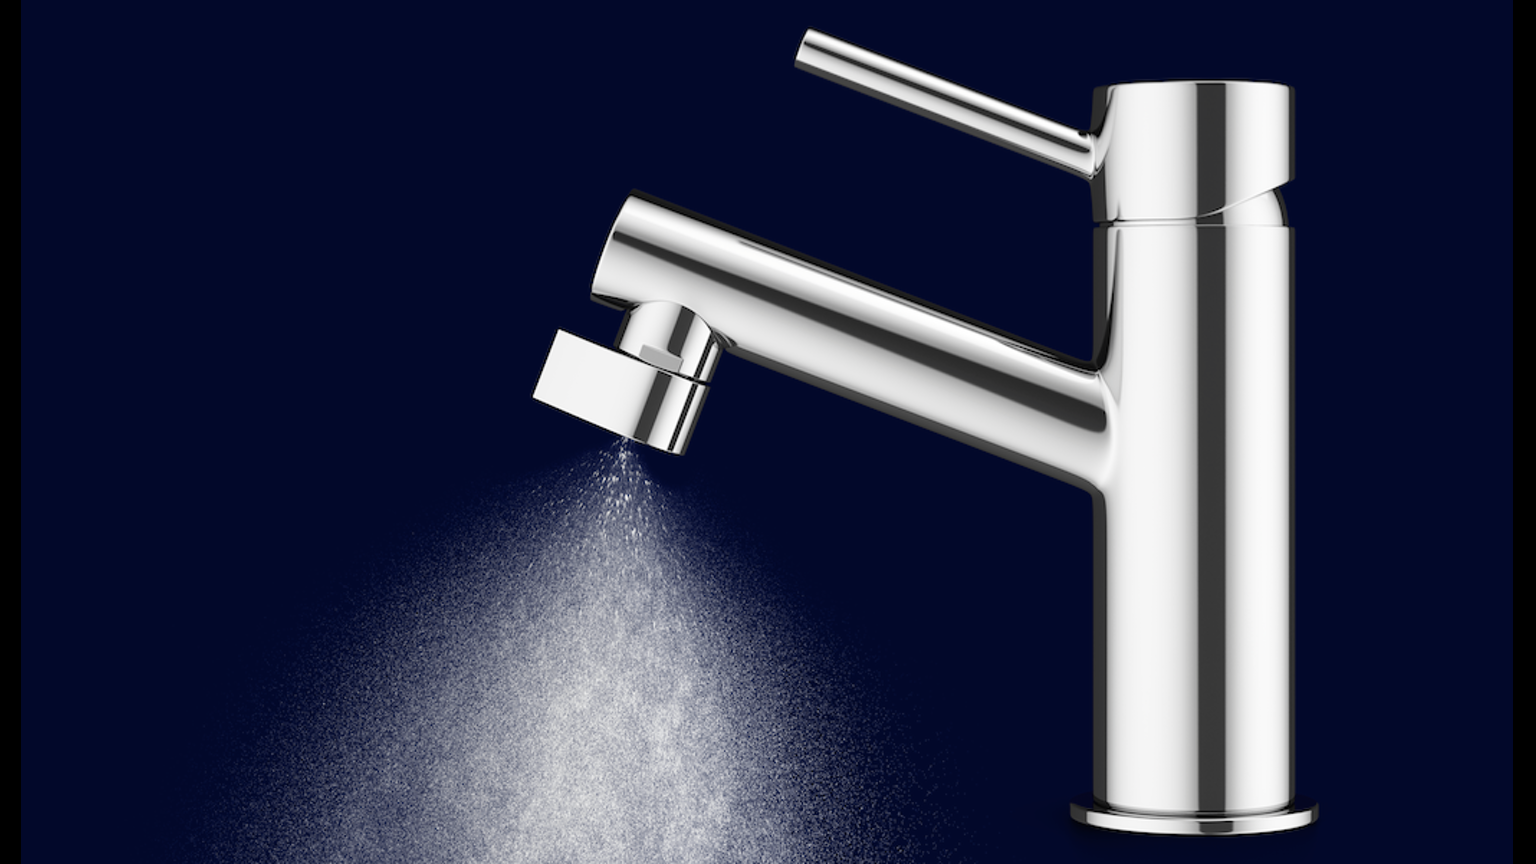 Experience Mist With The Worlds Most Extreme Water Saving Nozzle Don T Be A Drainer Only Use What You Need Products I Love Faucet Save Water Sink Faucets